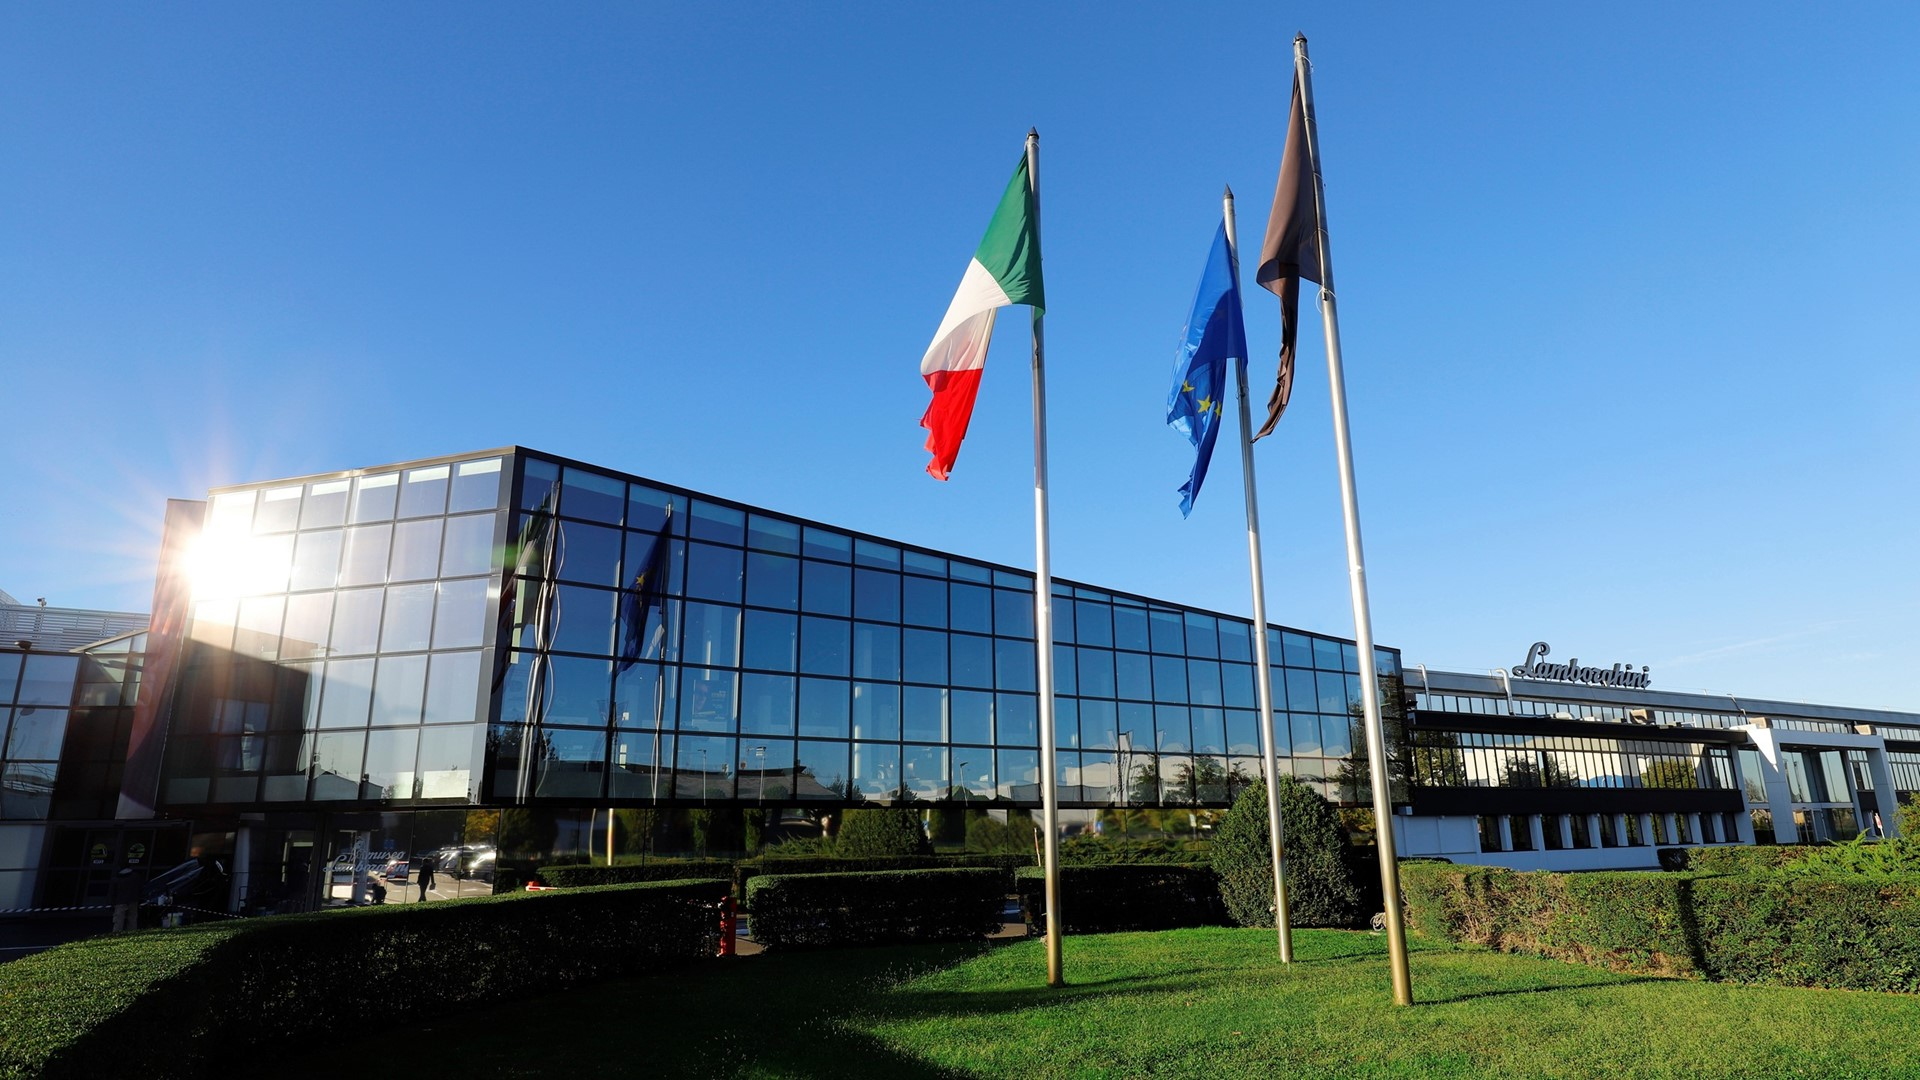 Automobili Lamborghini continues its global growth and marks new historic highs: 8,205 cars delivered in 2019 - Image 6